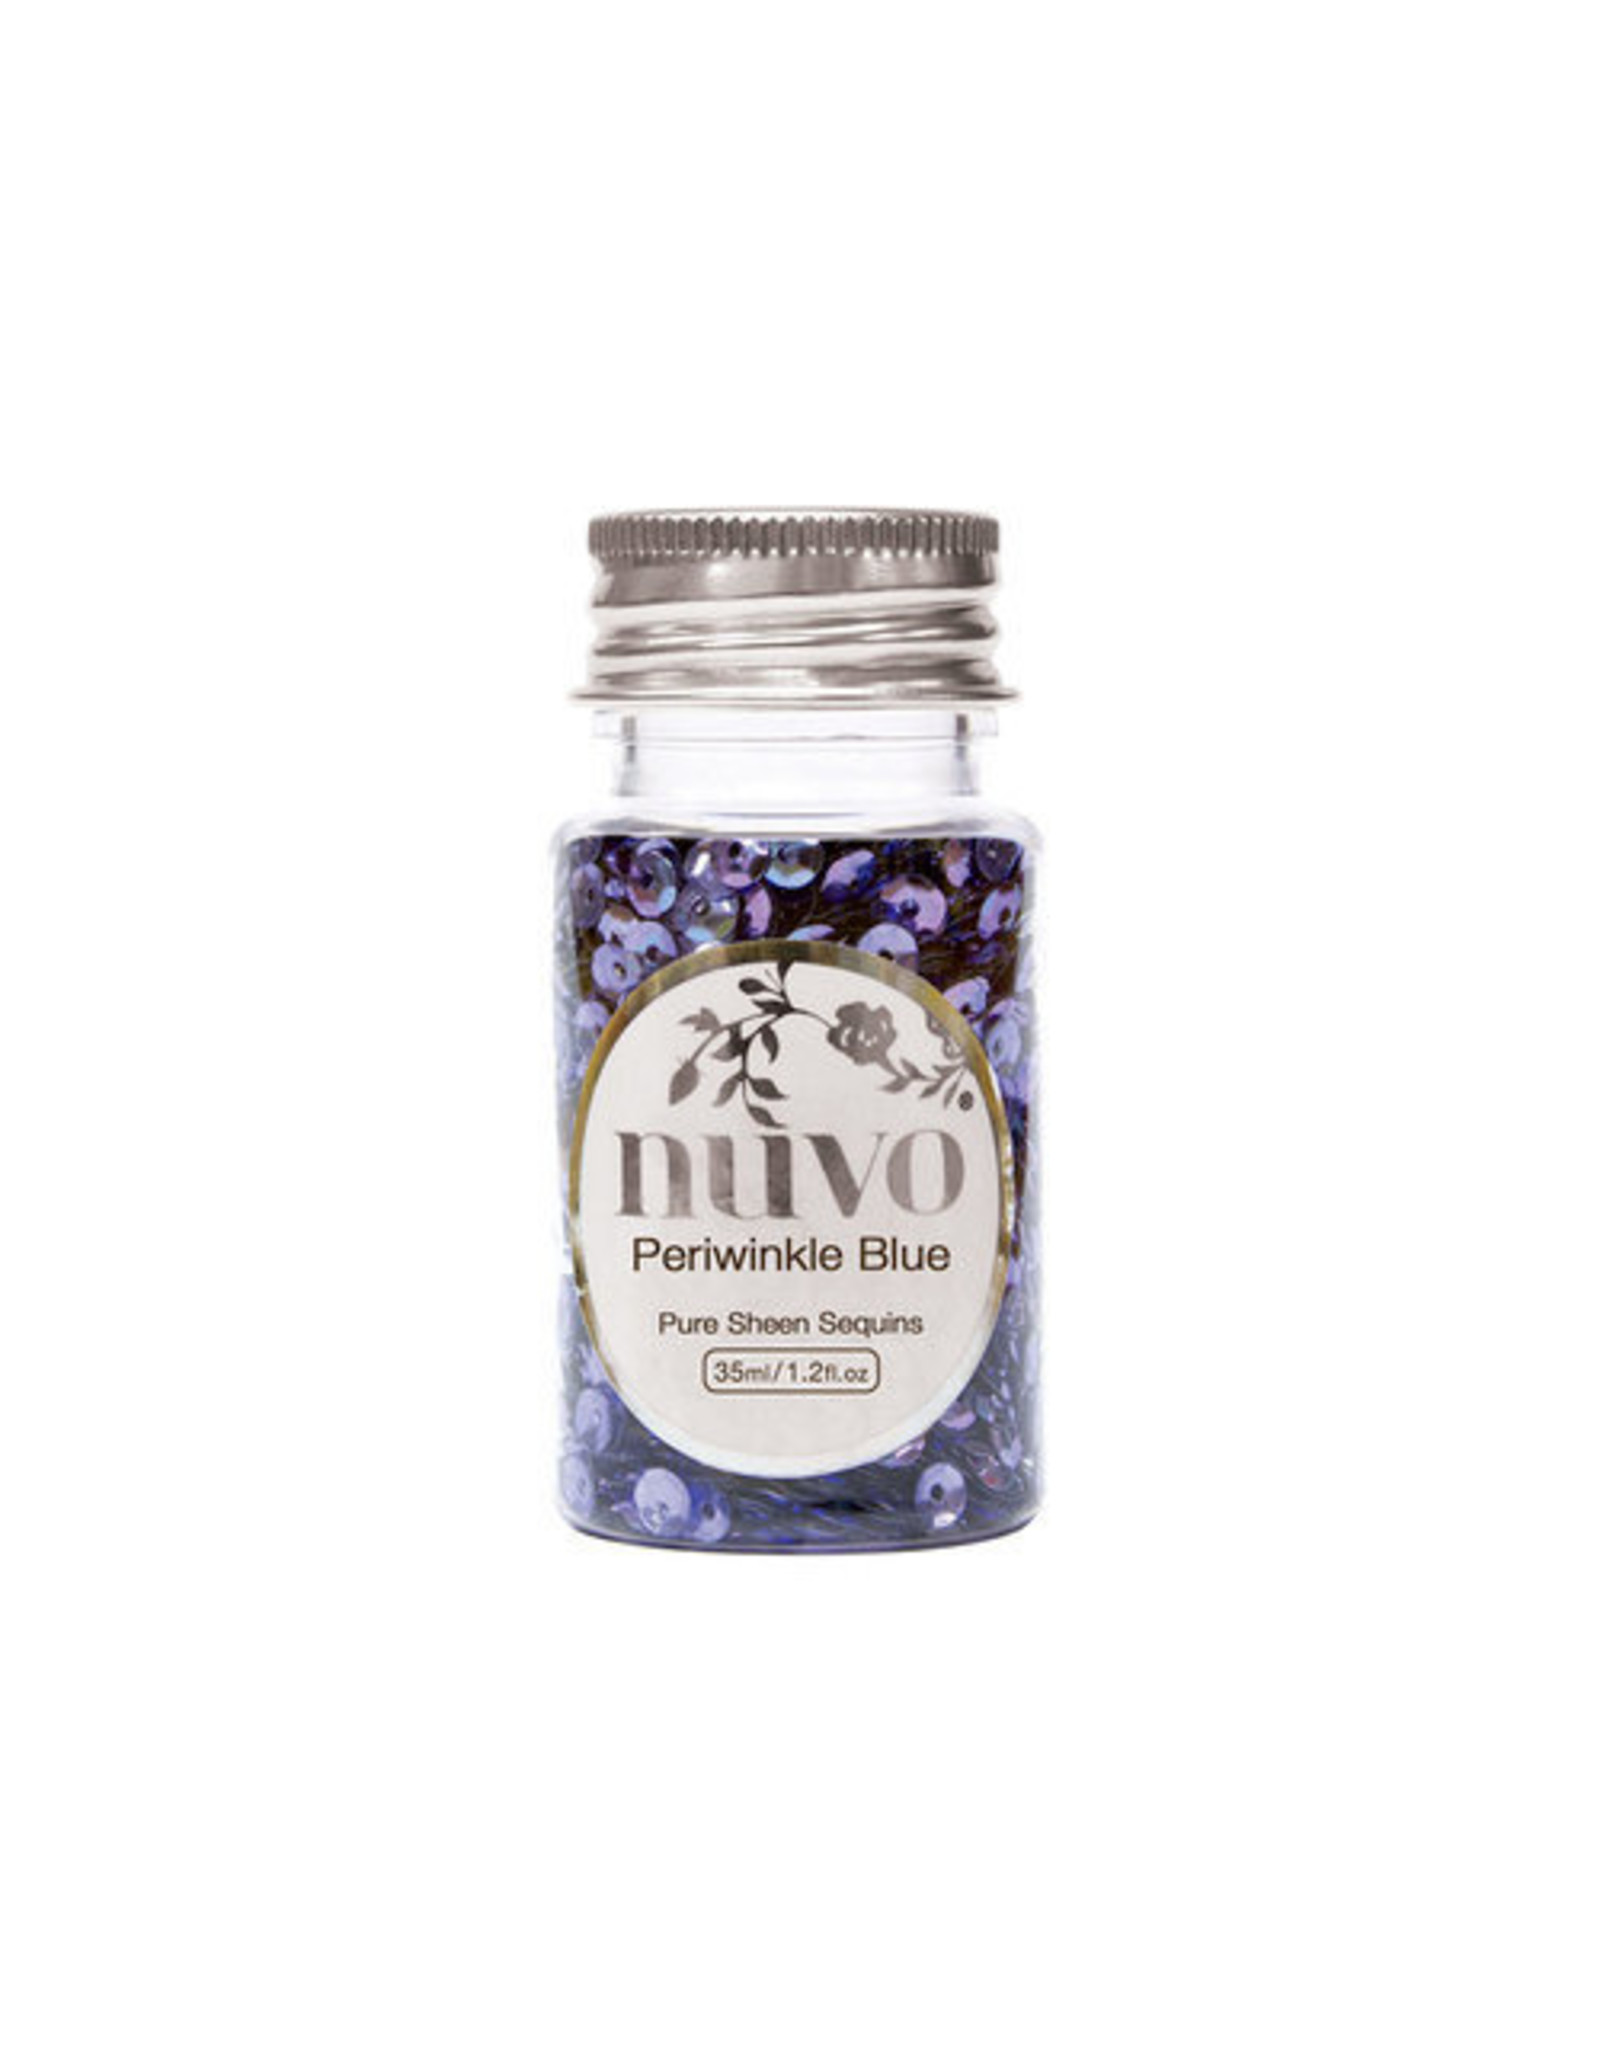 Nuvo Nuvo Pure Sheen Sequins - Periwinkle Blue